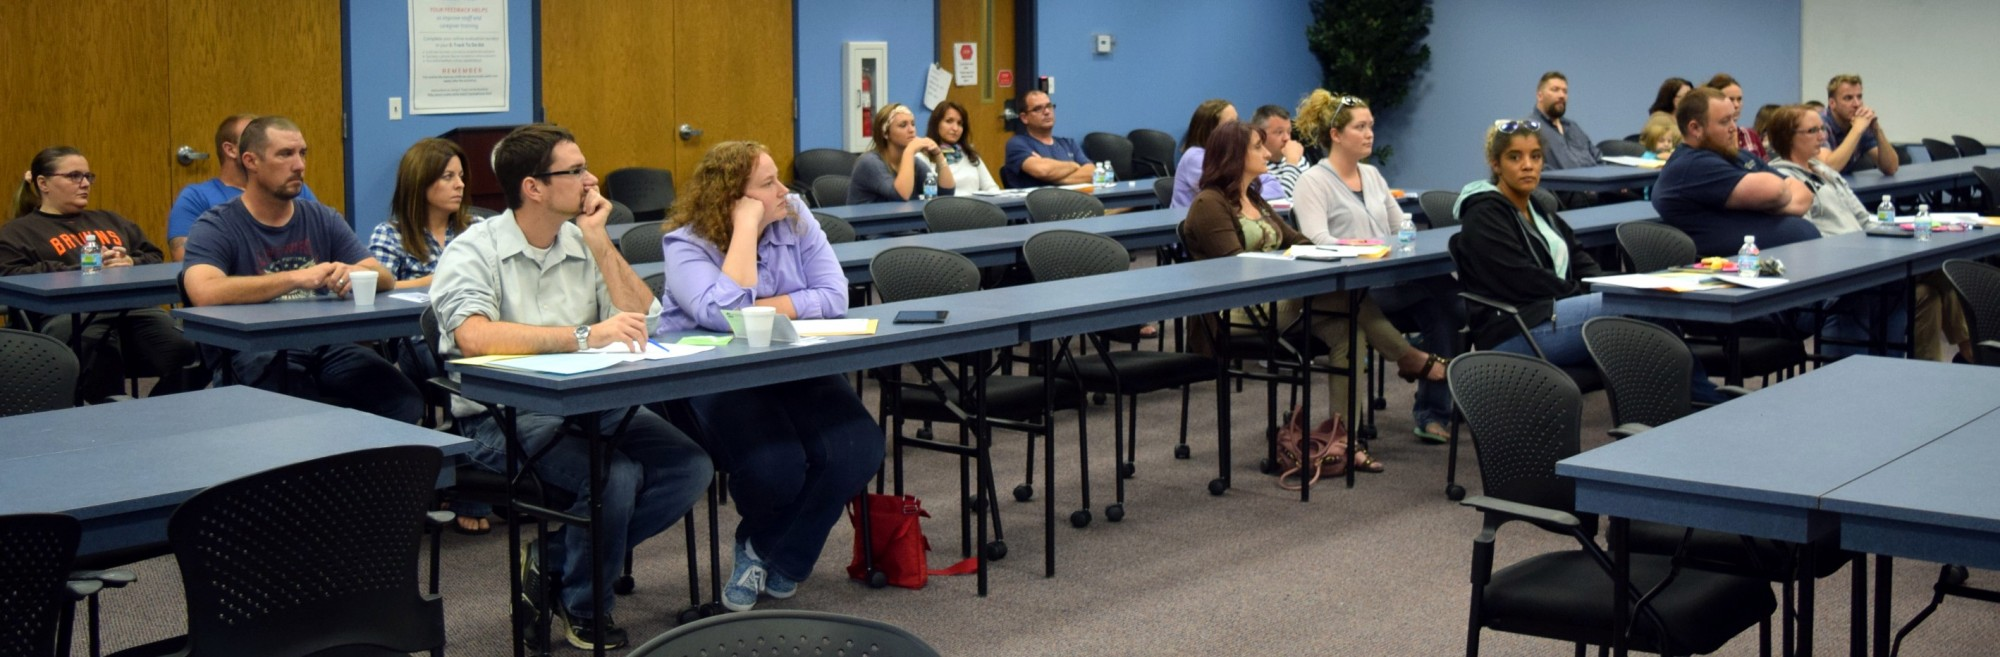 Prospective foster parents learn about Richland County Children Services